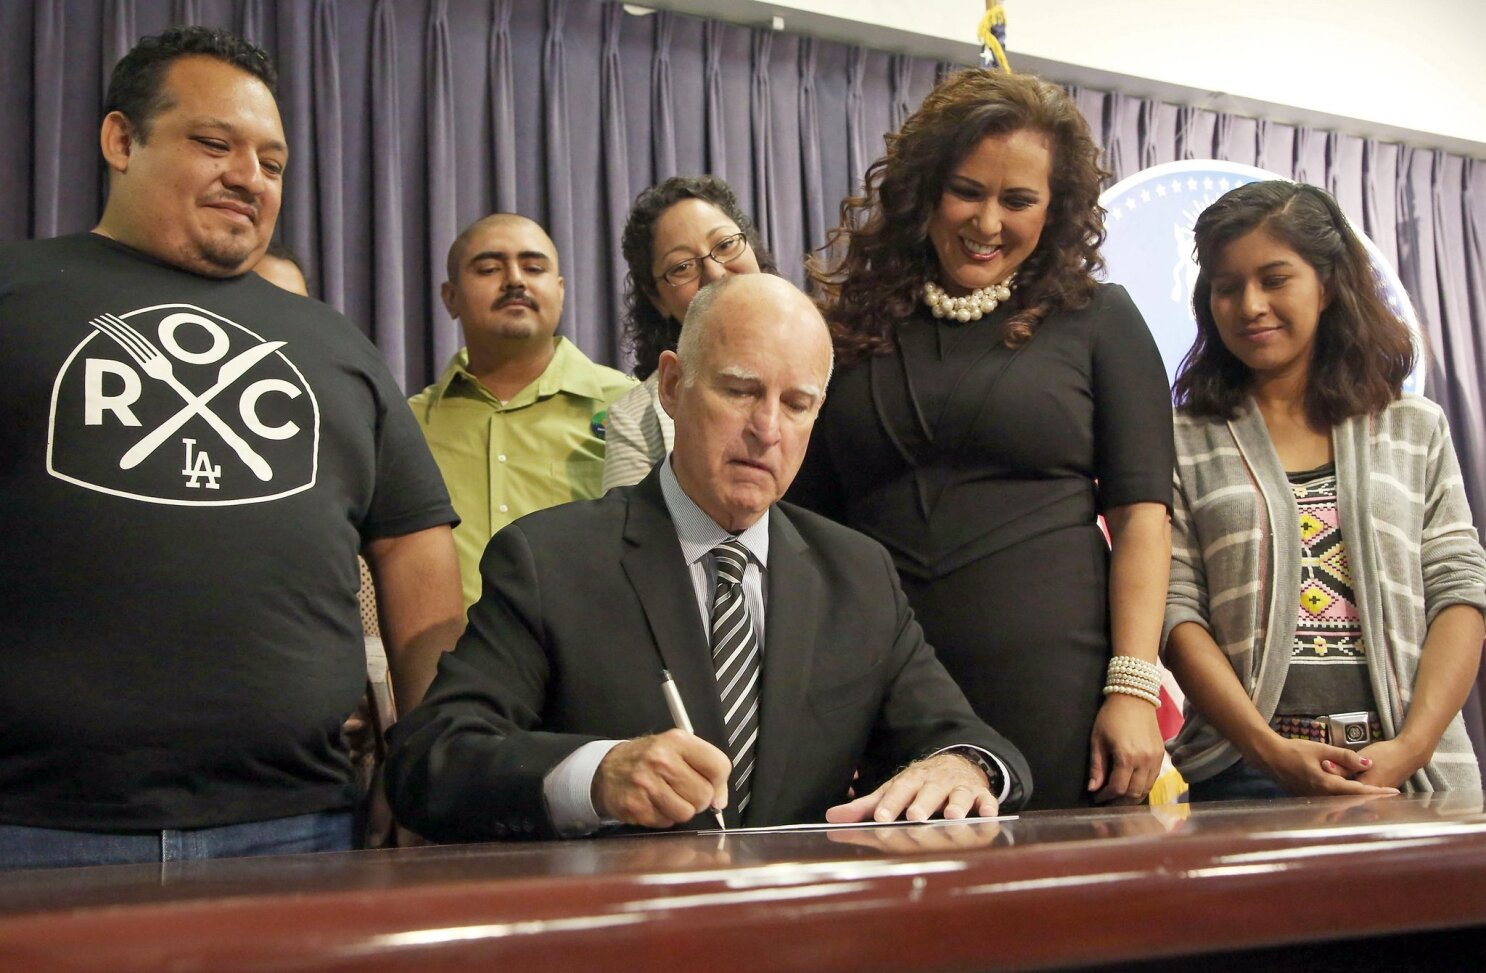 Workplace bullying in California is the target of a new state law